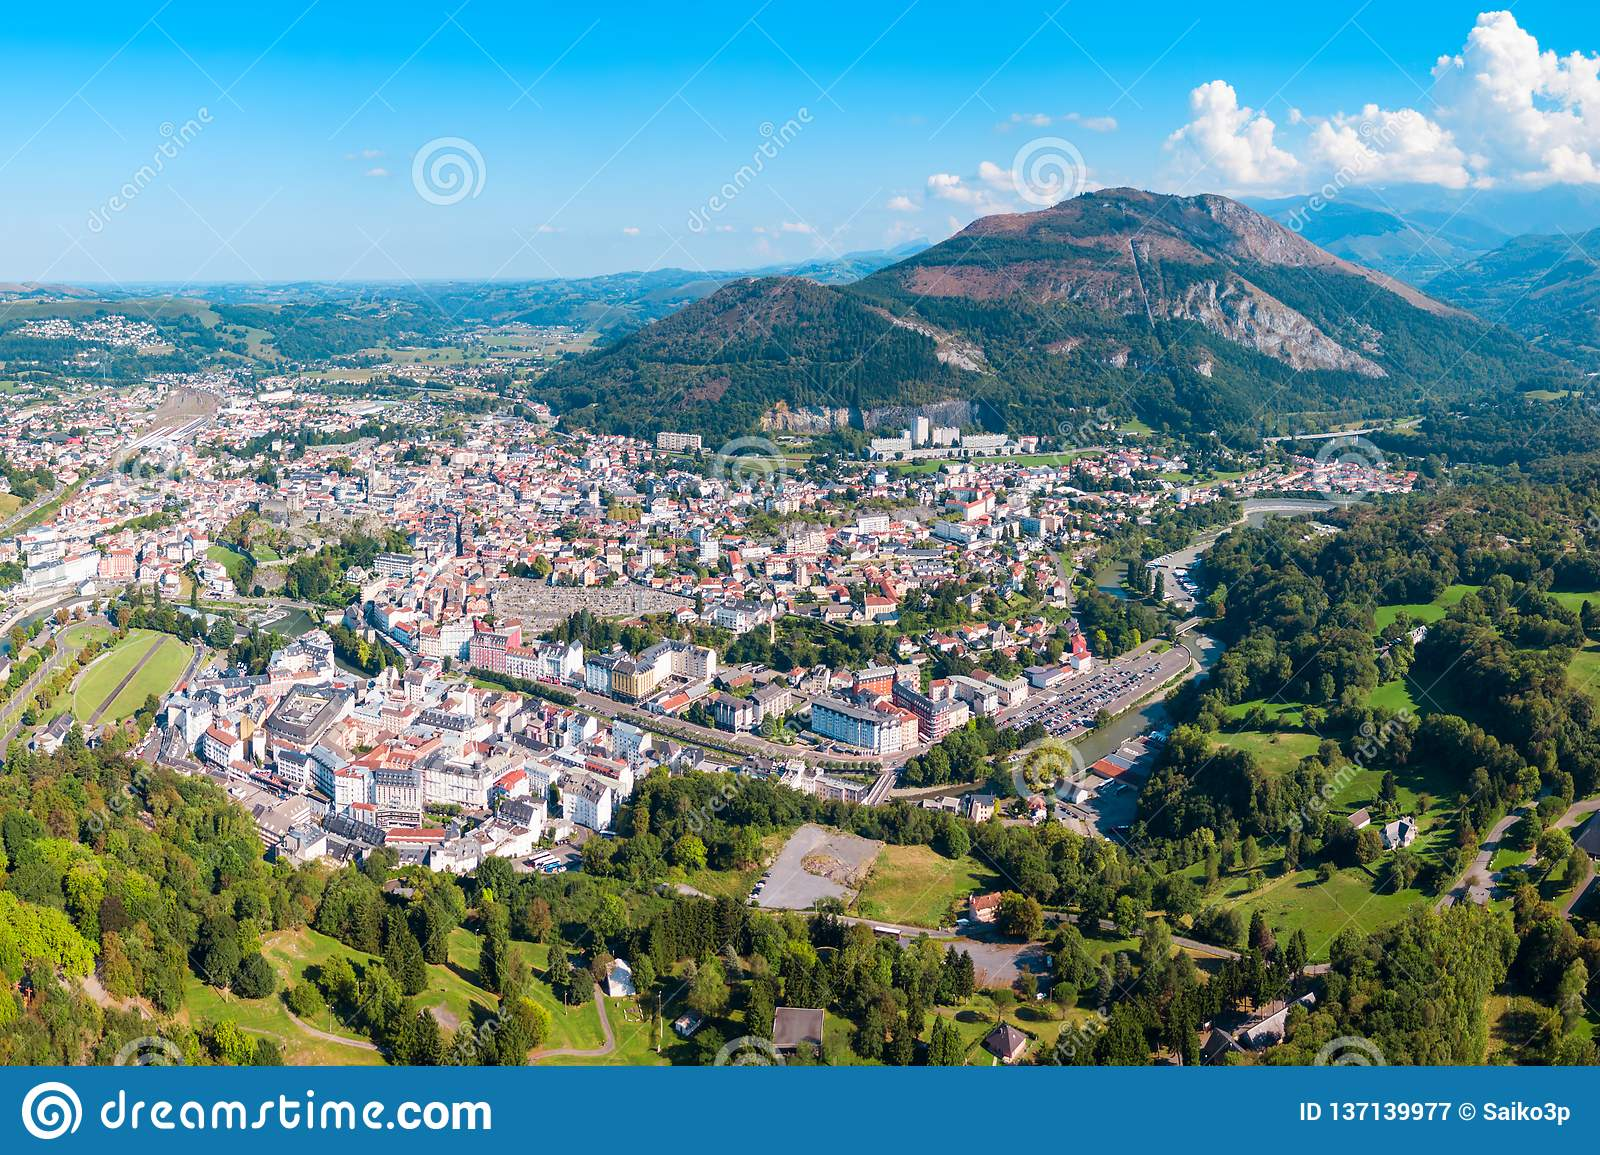 Lourdes small town in France